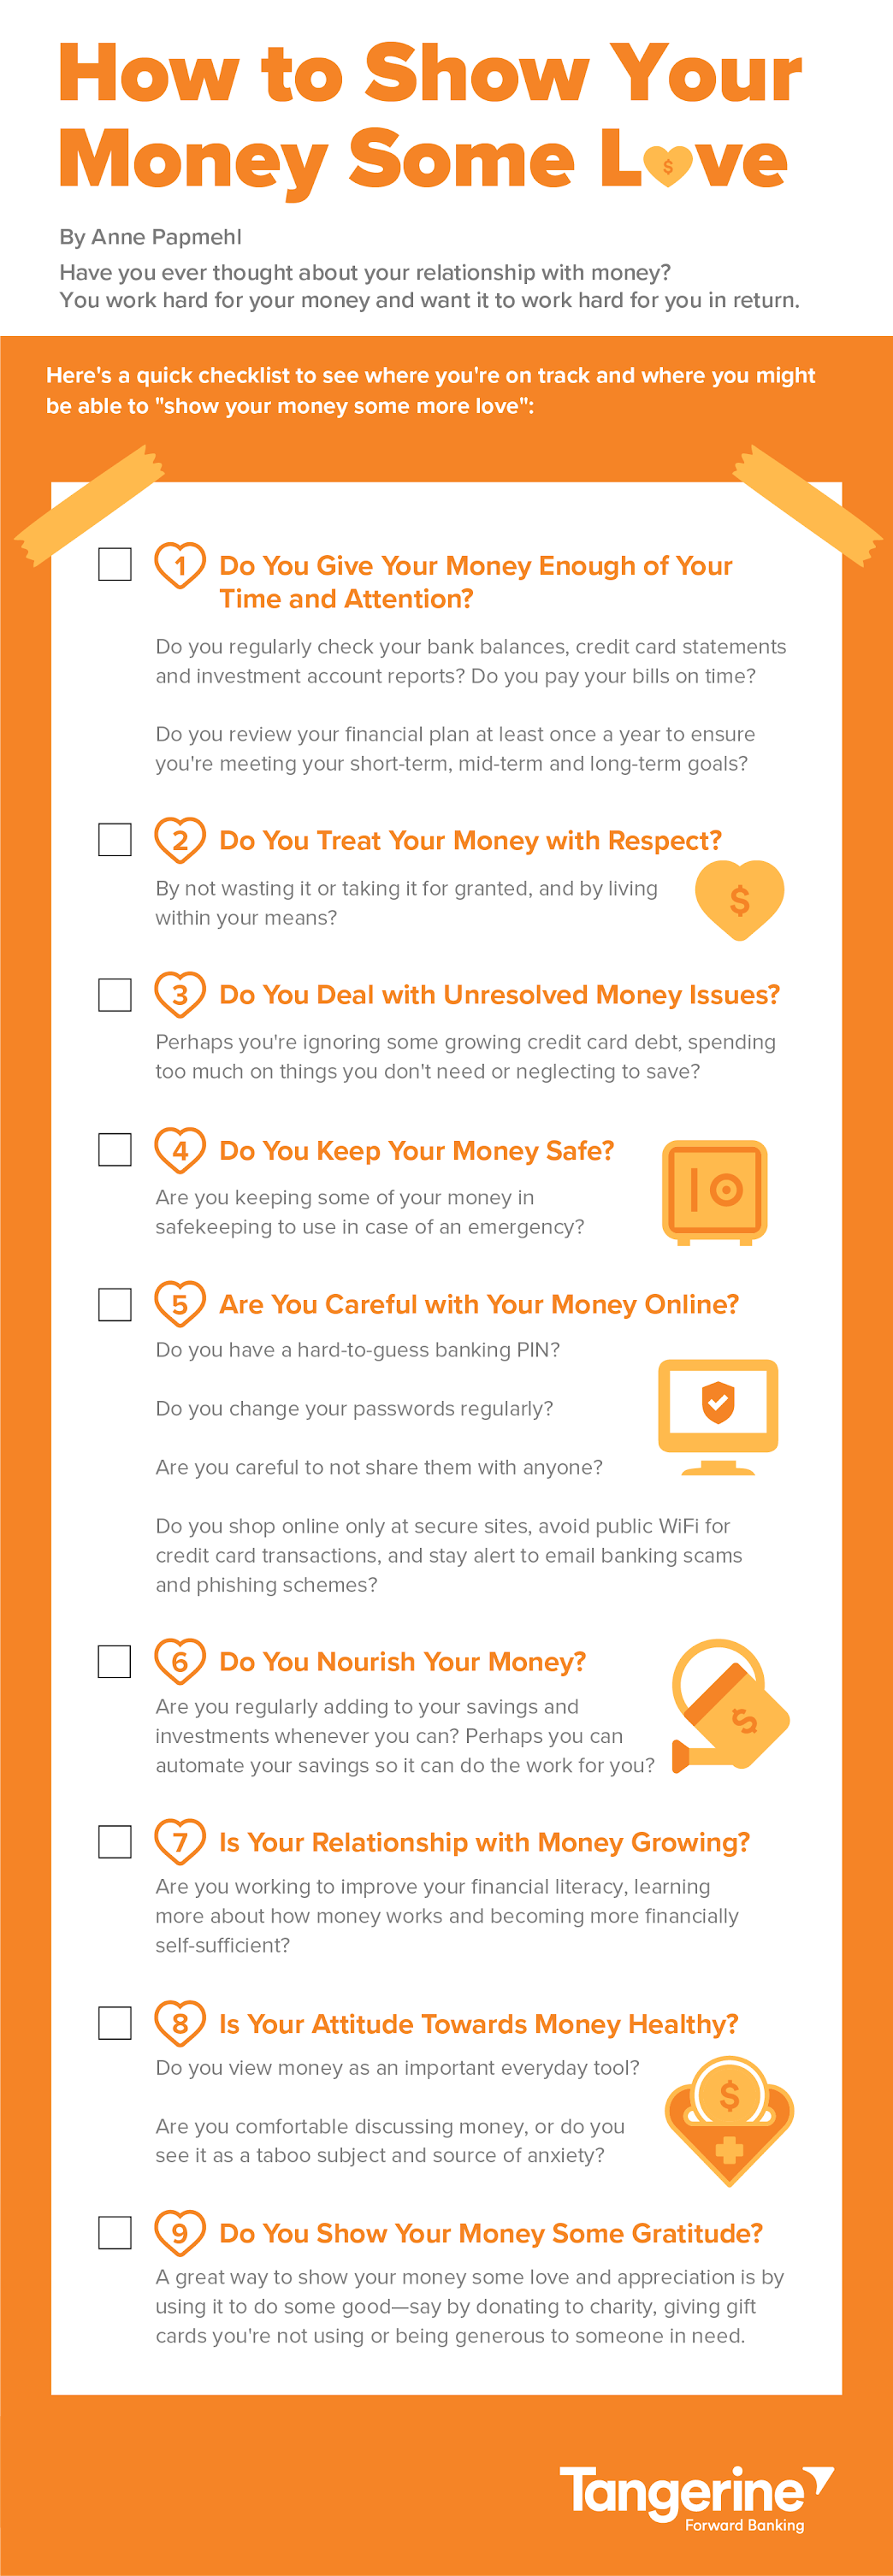 How to Show Your Money Some Love #infographic #Love & Money #Relationship #Dating and love